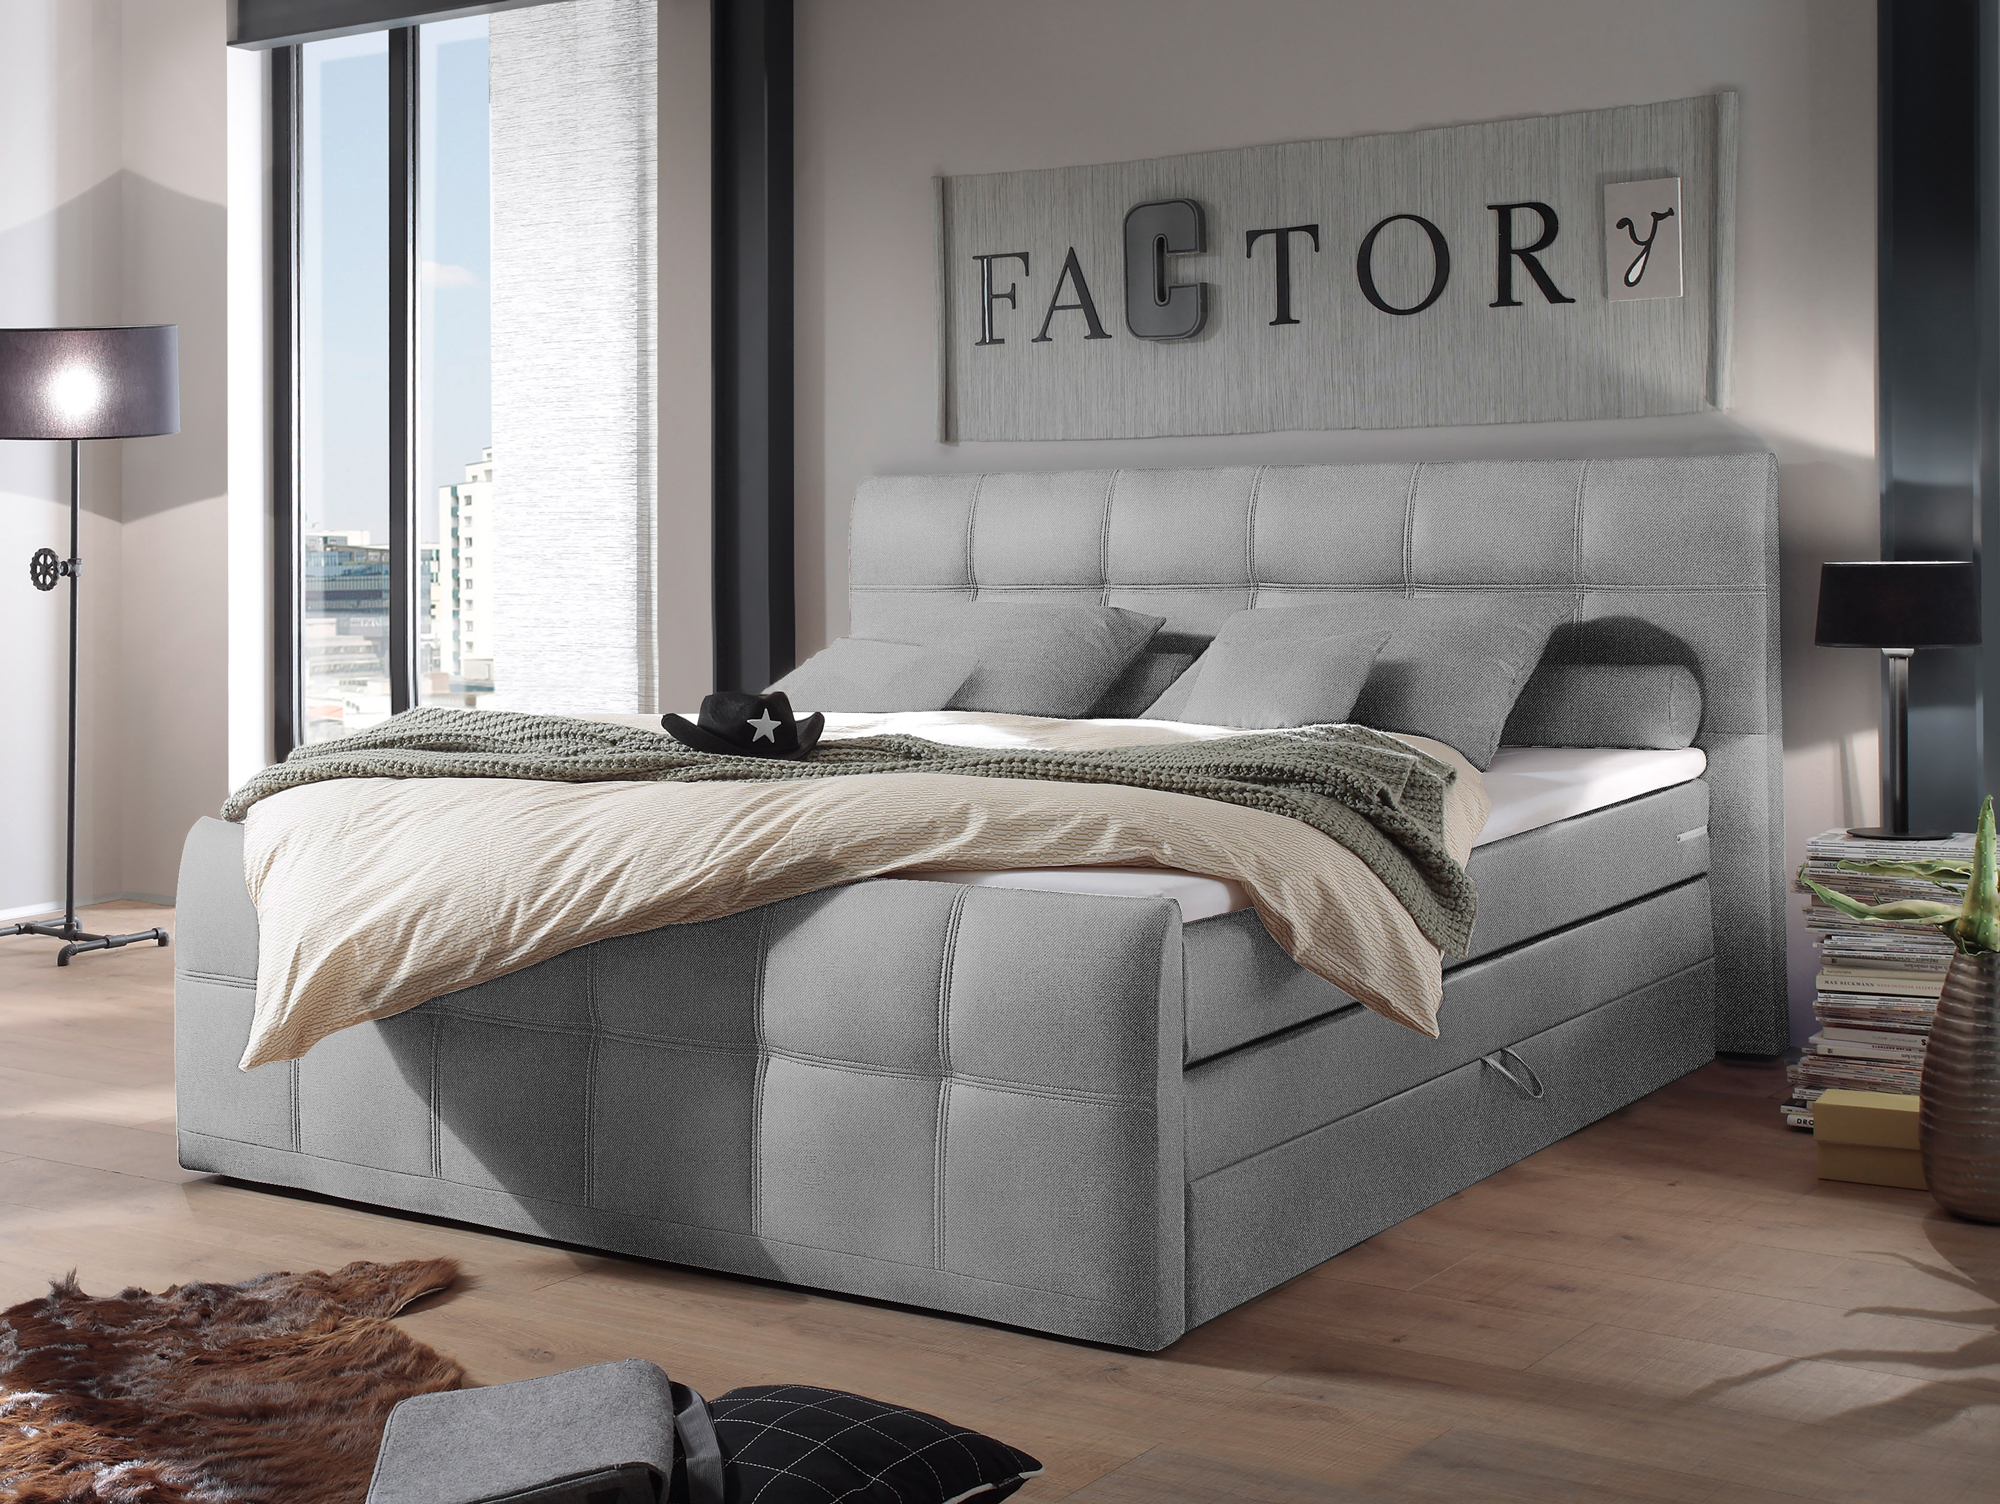 samara boxspringbett integrierter bettkasten 180x200 cm grau. Black Bedroom Furniture Sets. Home Design Ideas